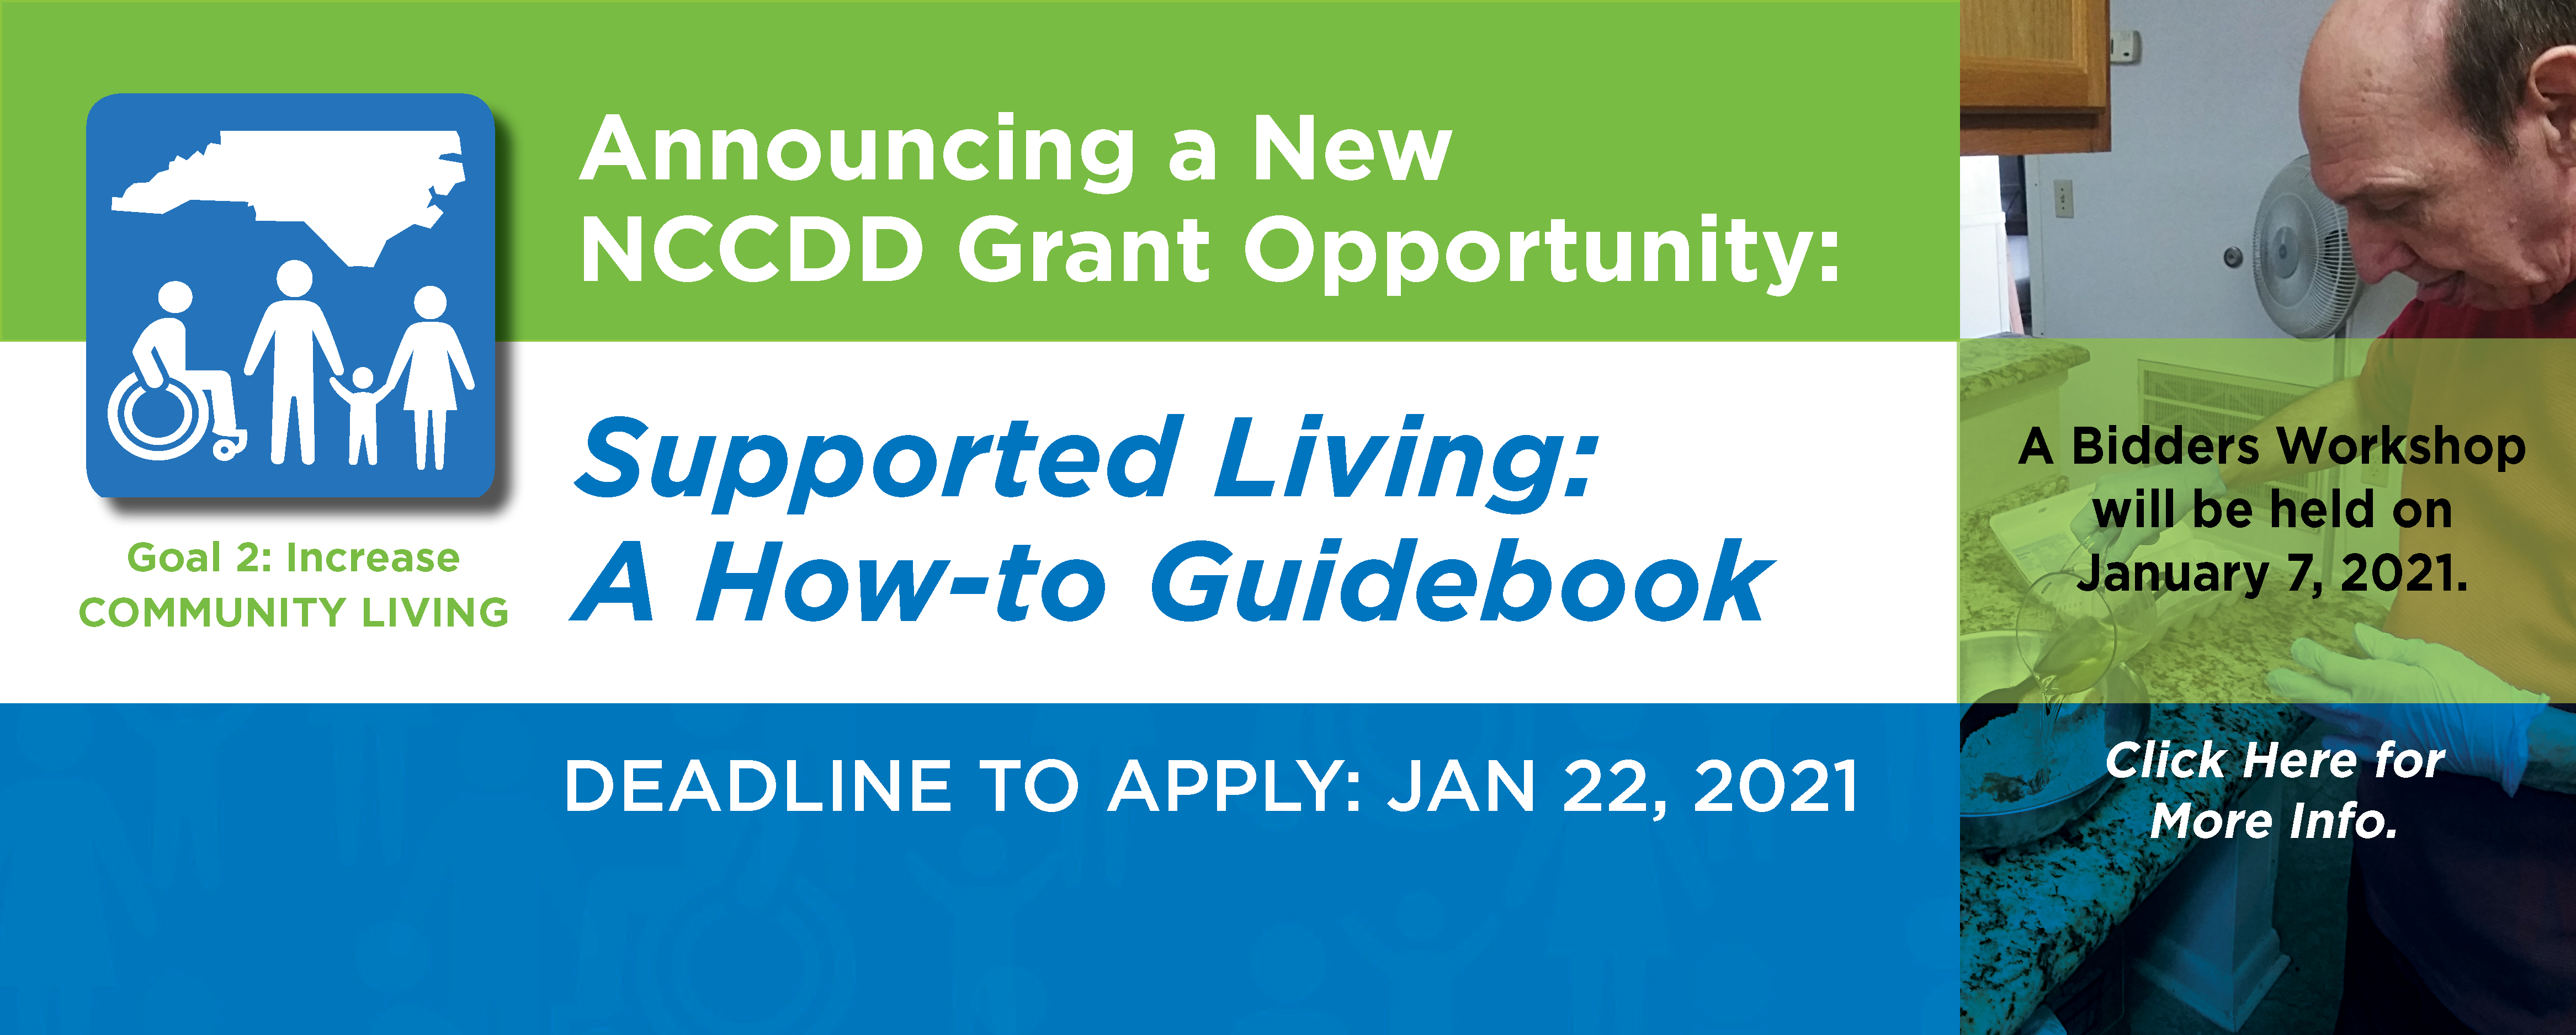 NCCDD Announces New RFA - Supported Living: A How-to Guidebook. Deadline to Apply Jan 22, 2021. Click here for details.